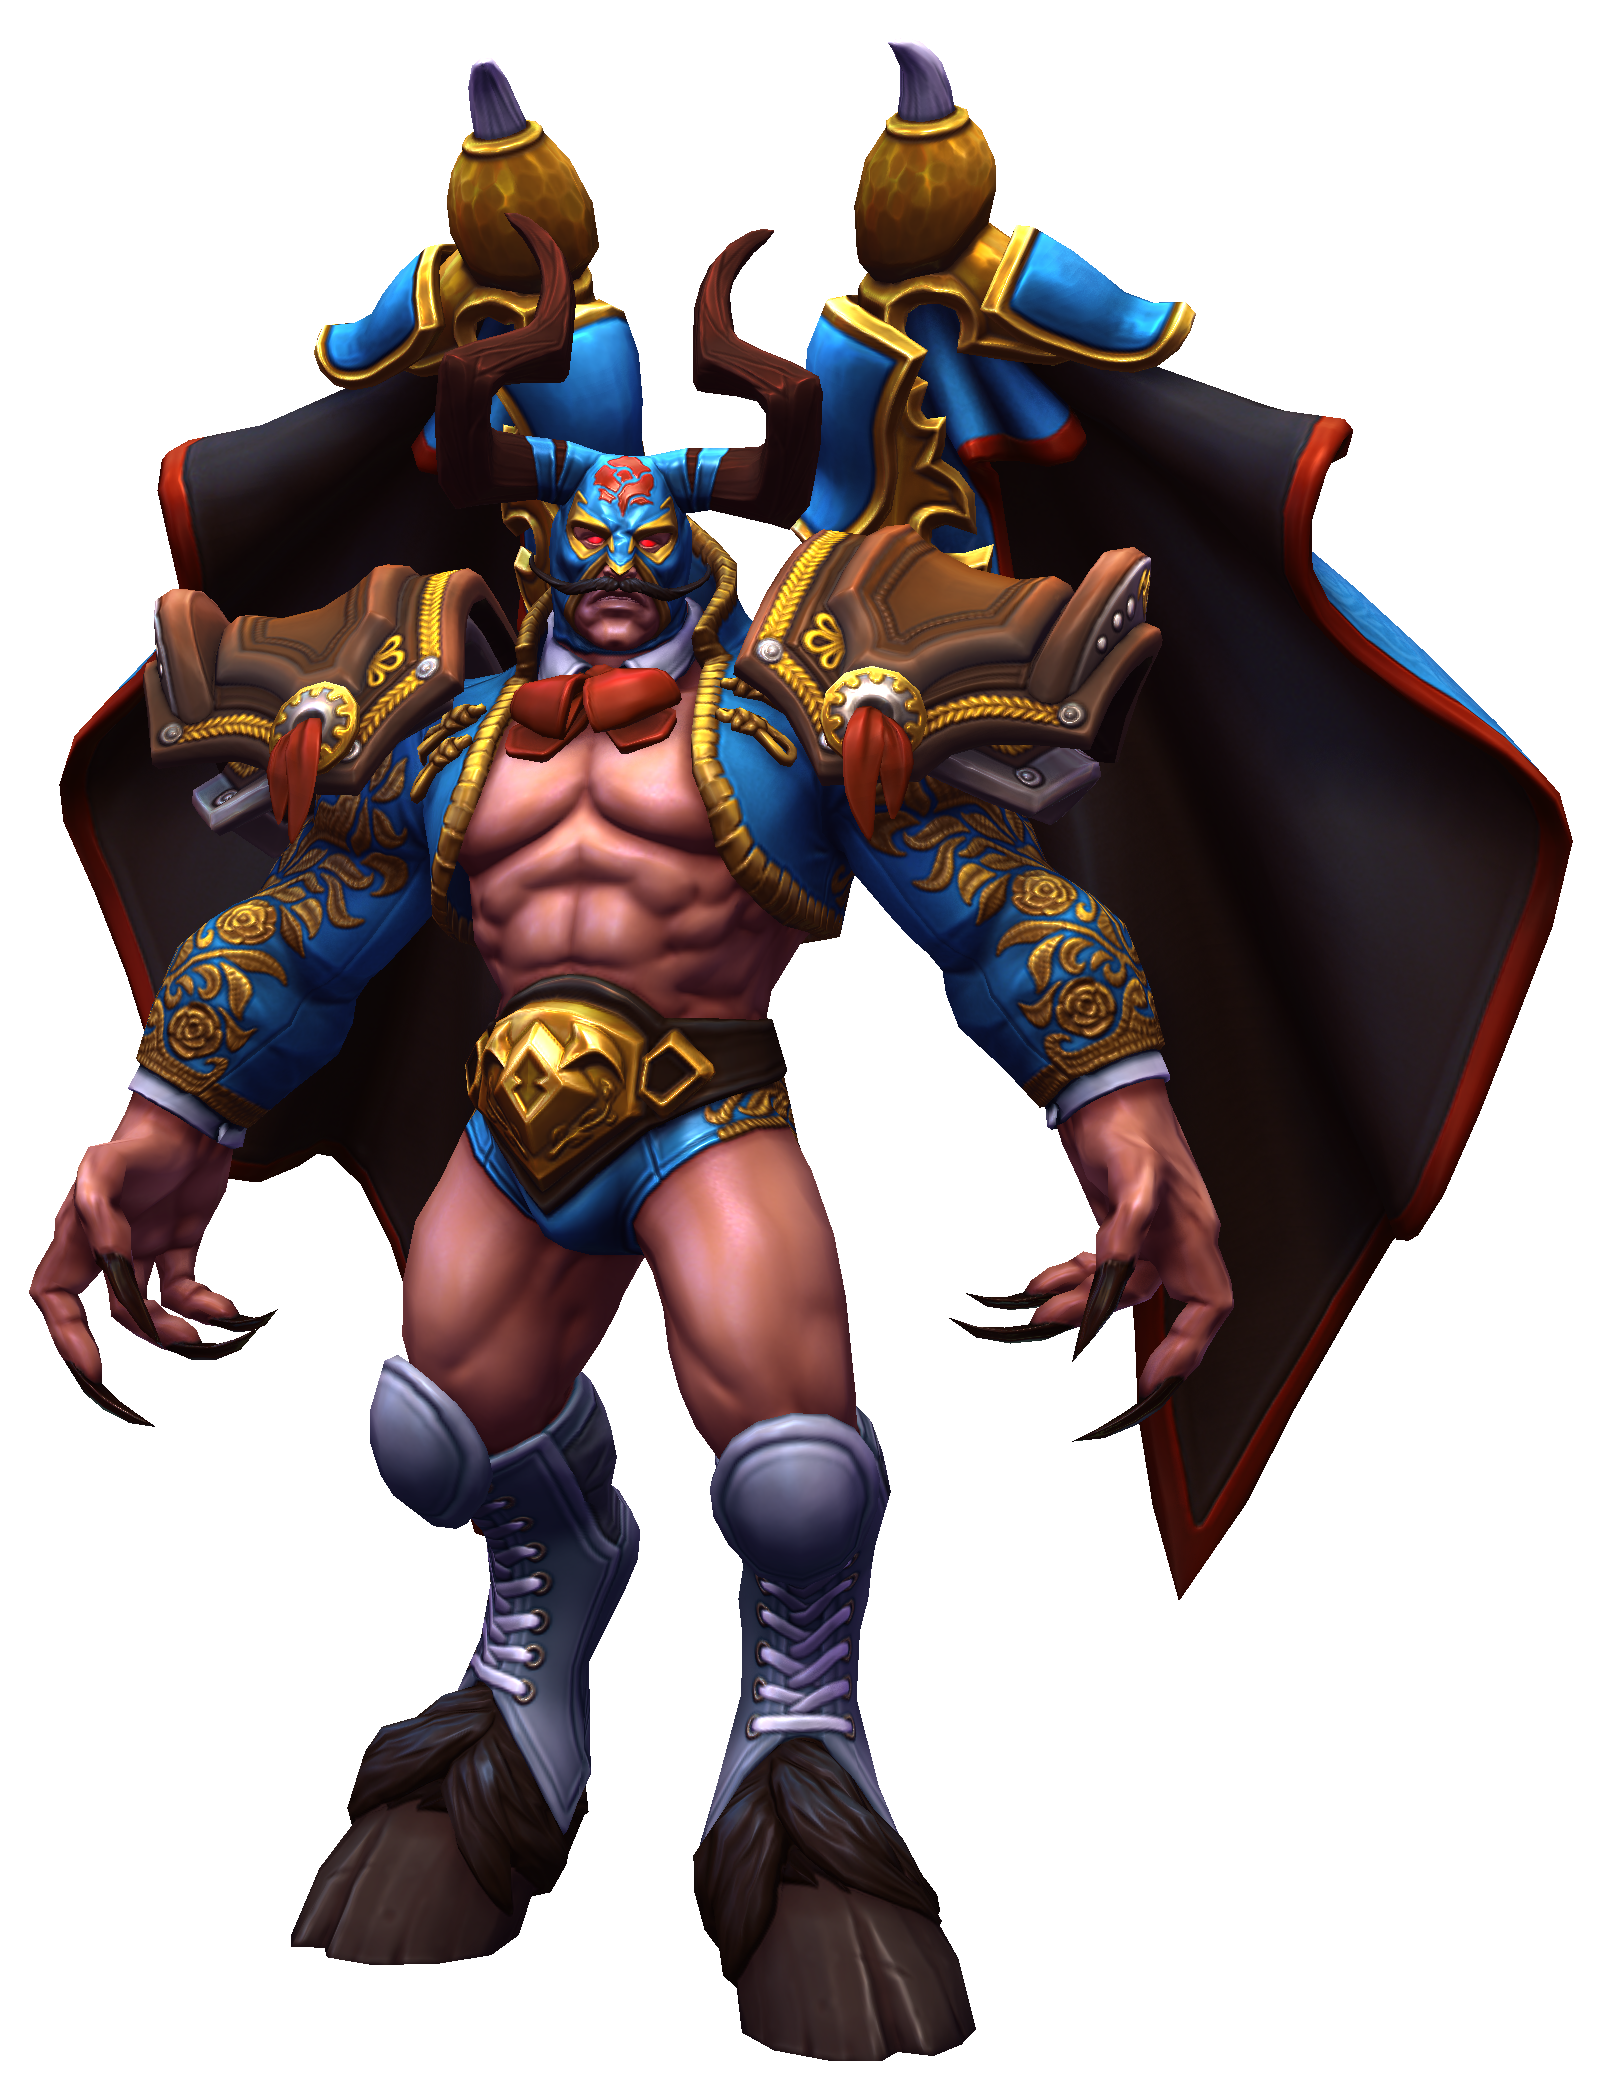 Overwatch S Mei Nexomania Ii And A New Nexus Anomaly Coming To Heroes Of The Storm Inven Global The best site dedicated to analyzing heroes of the storm replay files. heroes of the storm